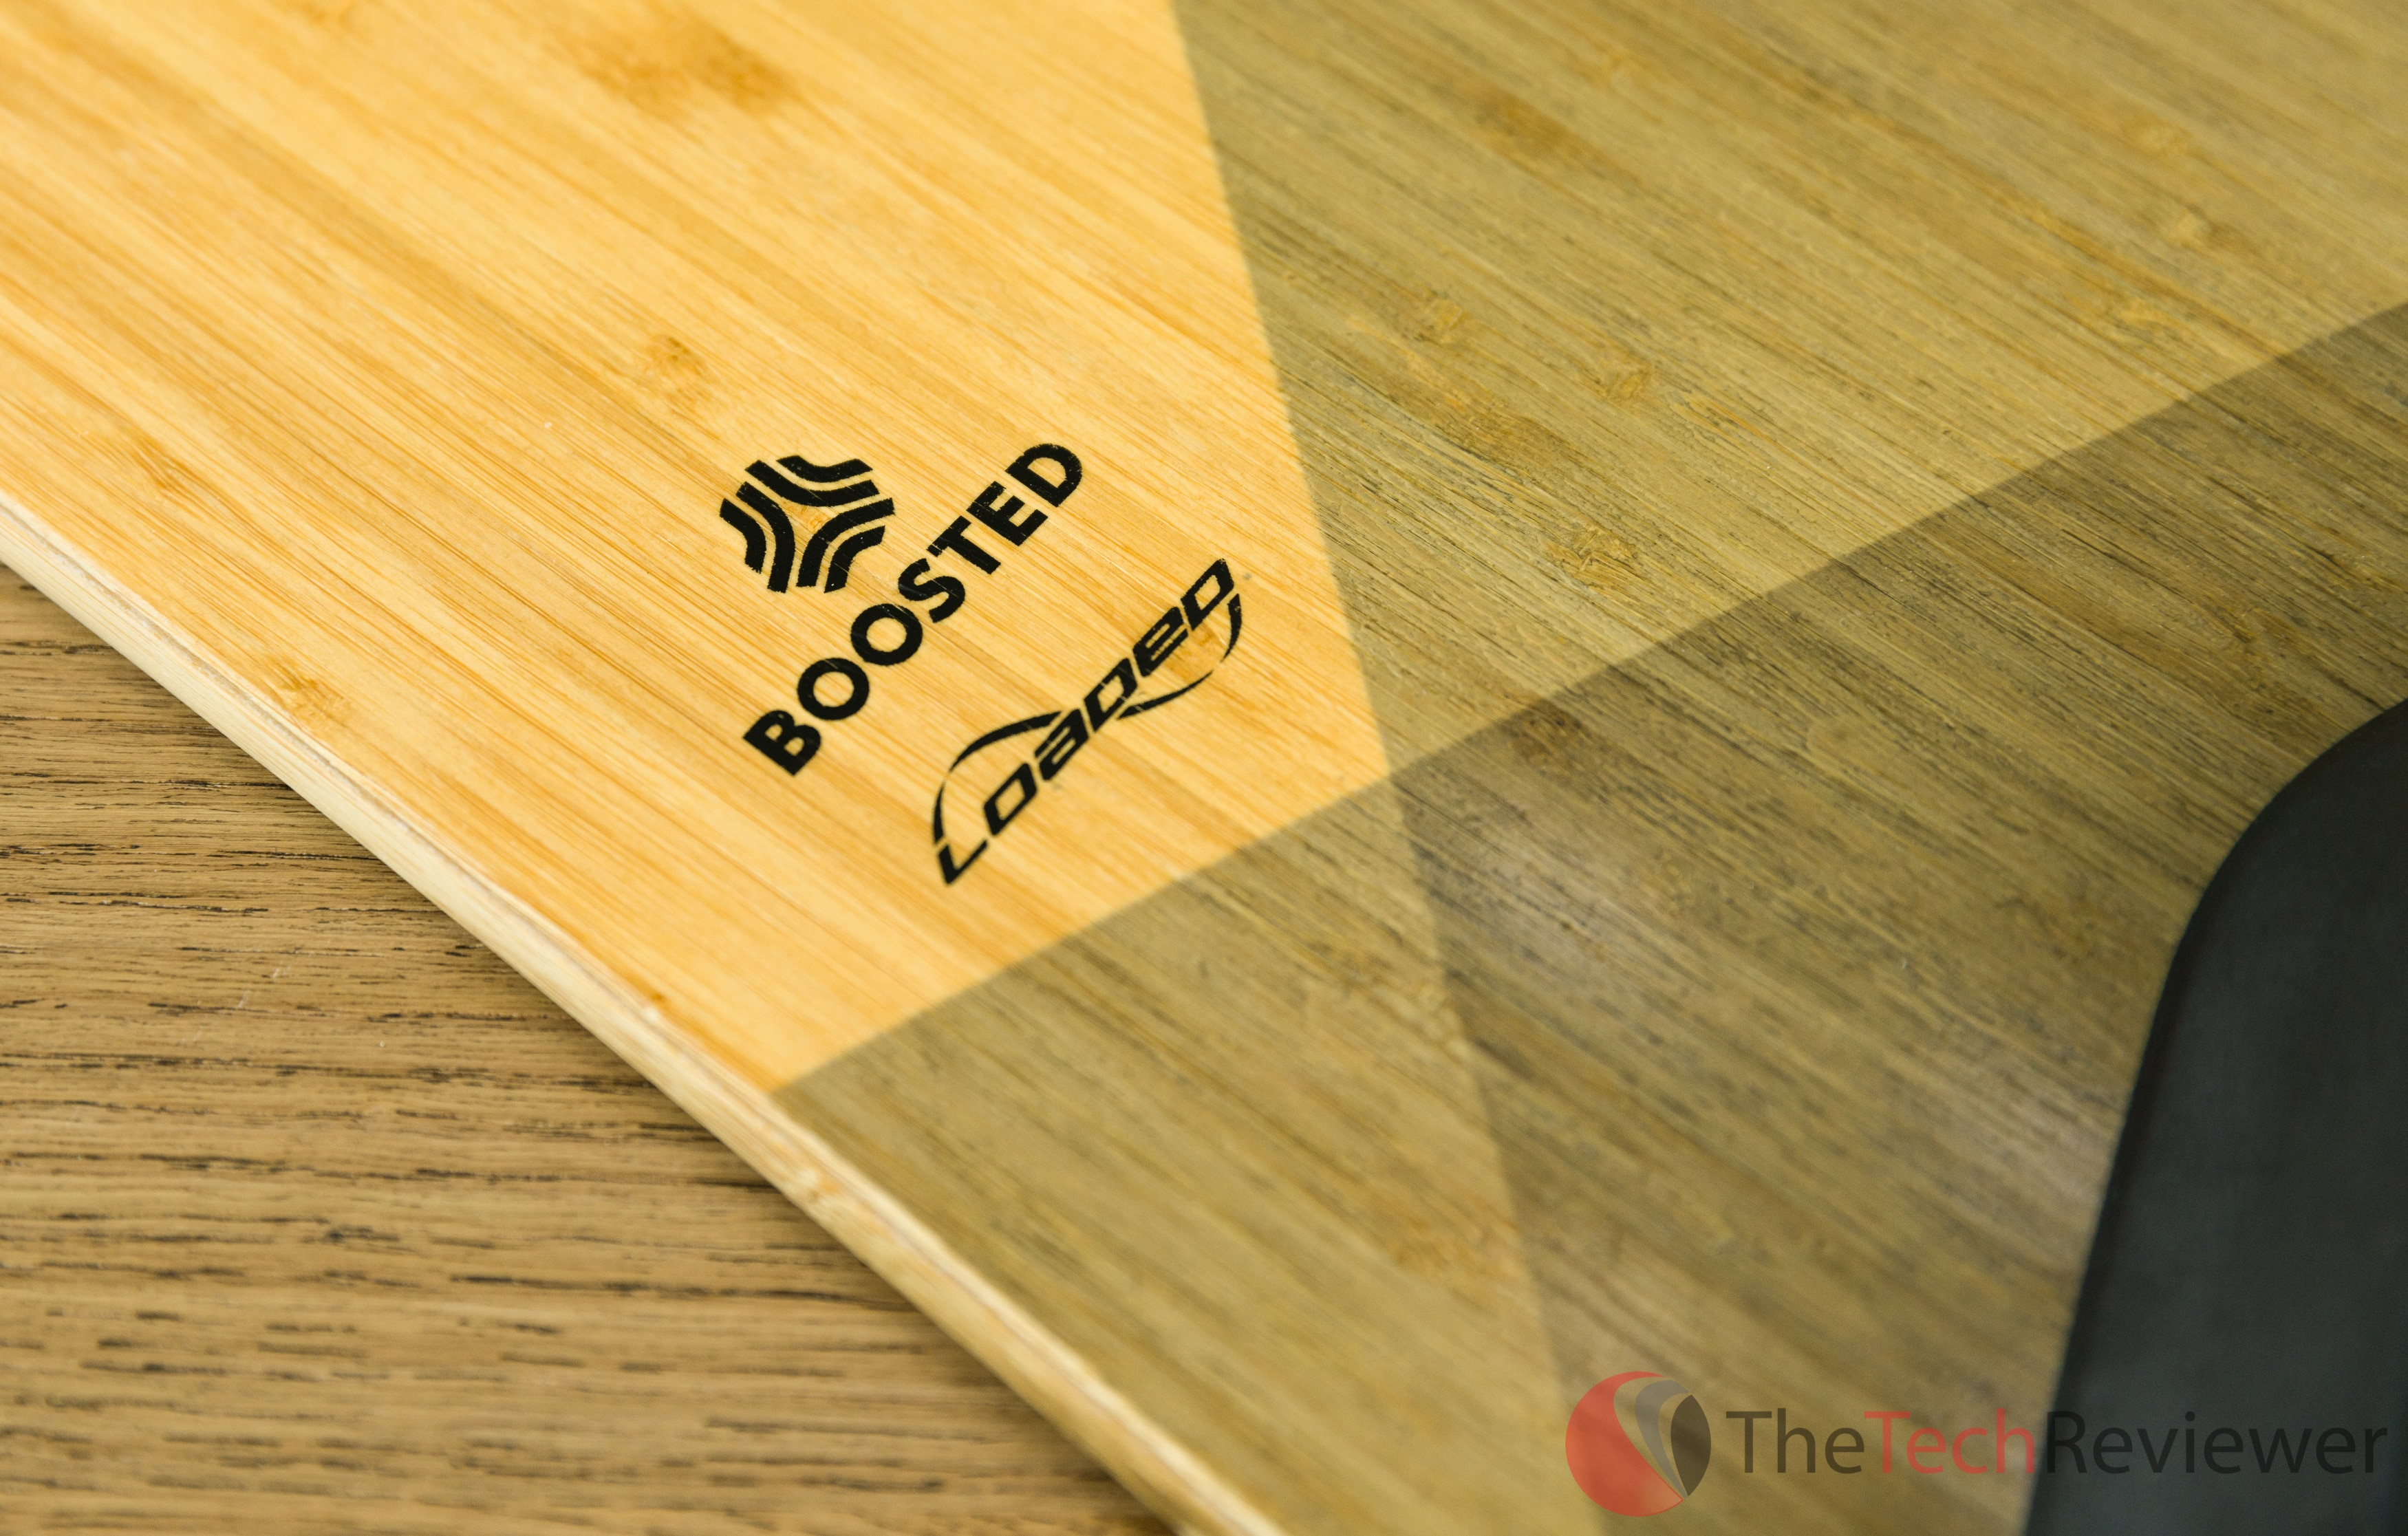 Buy Used Boosted Boards Online